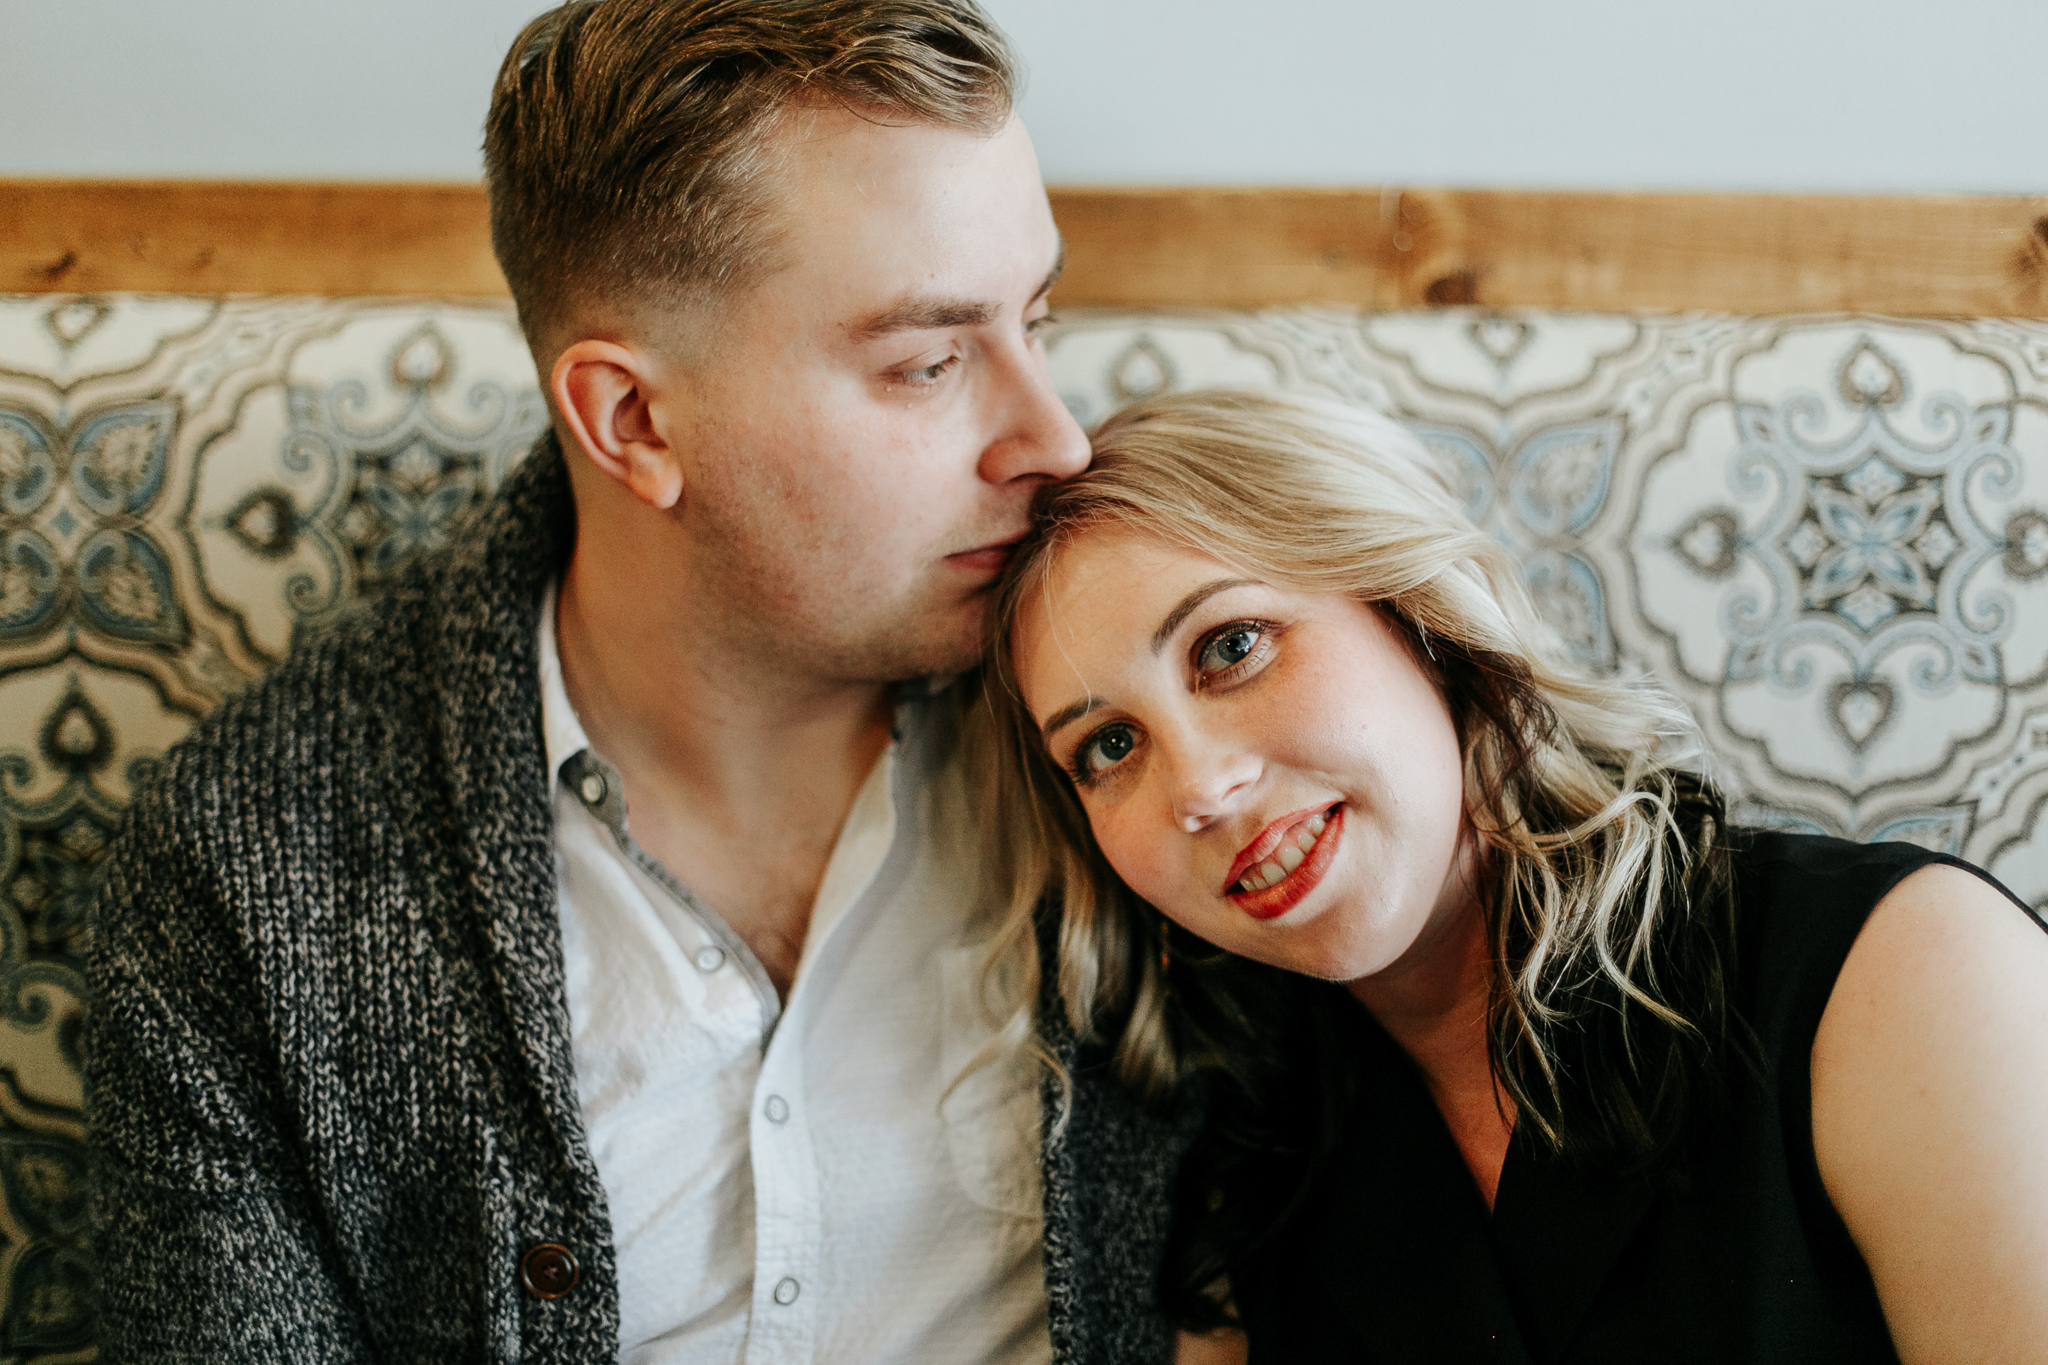 lethbridge-photographer-love-and-be-loved-photography-brandon-danielle-winter-engagement-downtown-yql-picture-image-photo-11.jpg